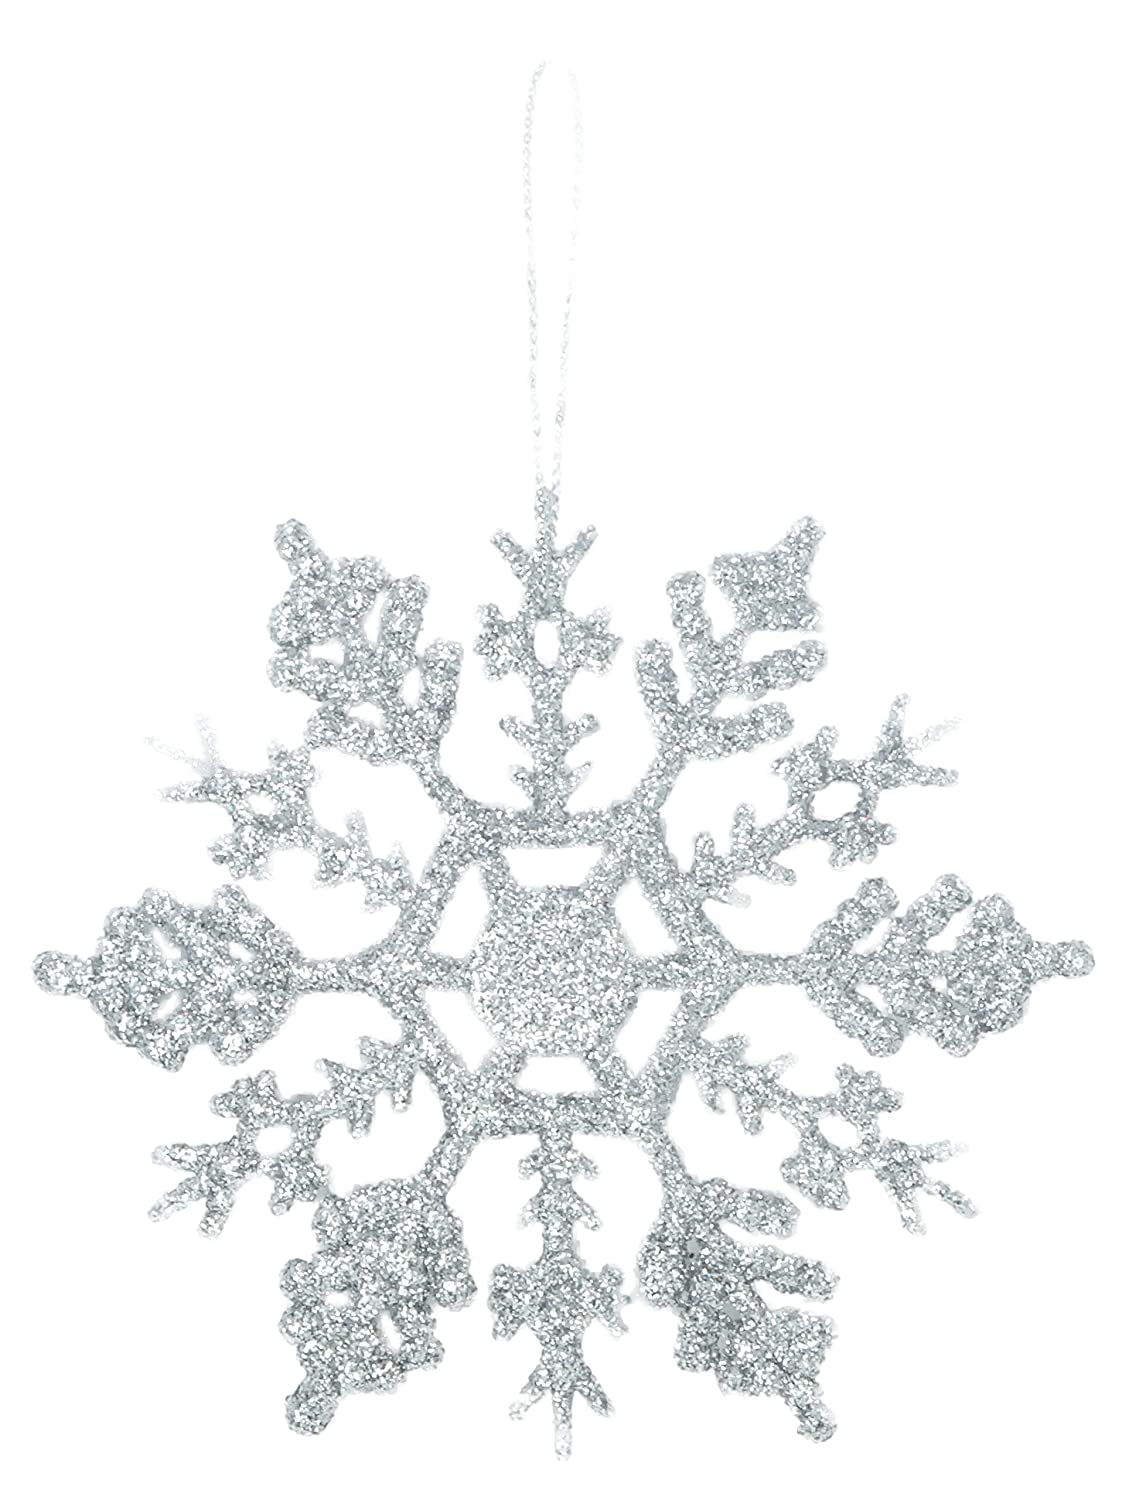 Christmas Concepts® Pack of 12-10cm Silver Glitter Snowflake Hanging Decorations - Christmas Decorations